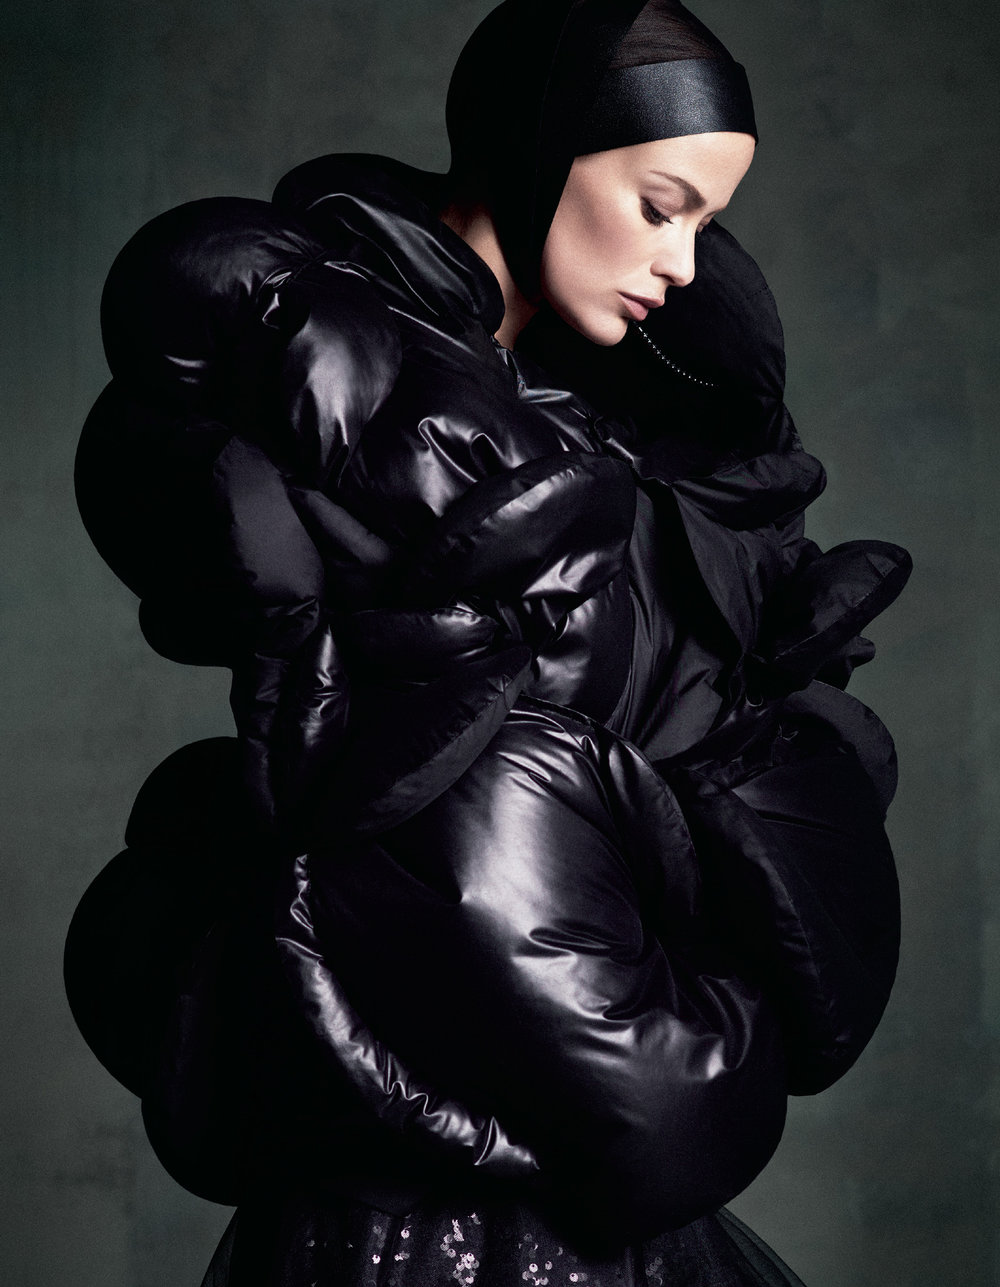 Giovanna-Battaglia-The-Icons-Of-Perfections-Vogue-Japan-15th-Anniversary-Issue-Luigi-Iango-V181_263_200-5.jpg